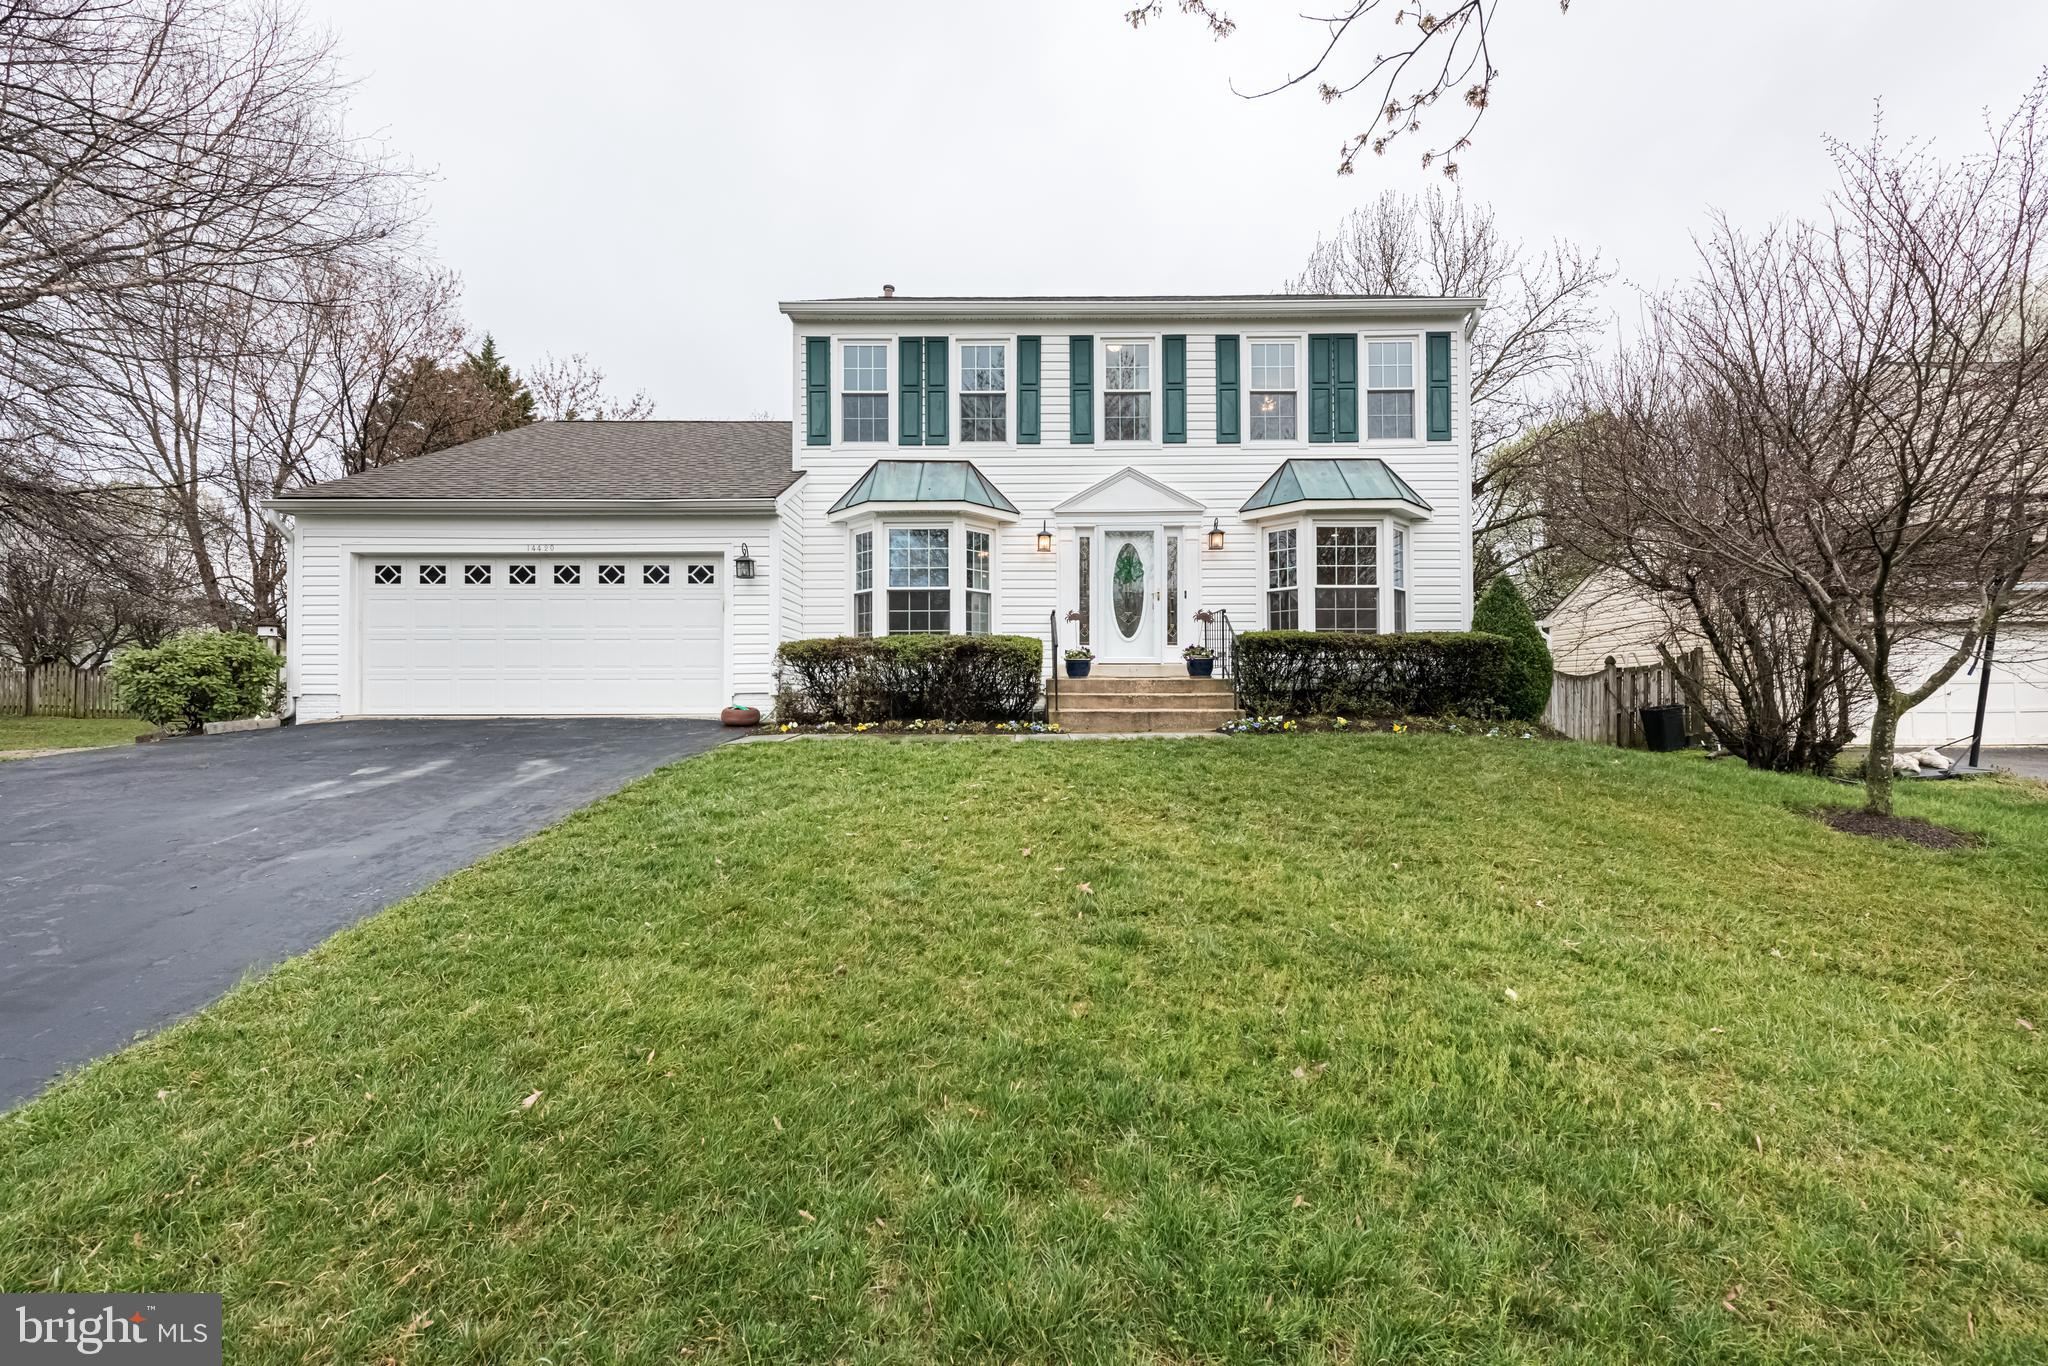 14420 OLD STAGE ROAD, BOWIE, MD 20720